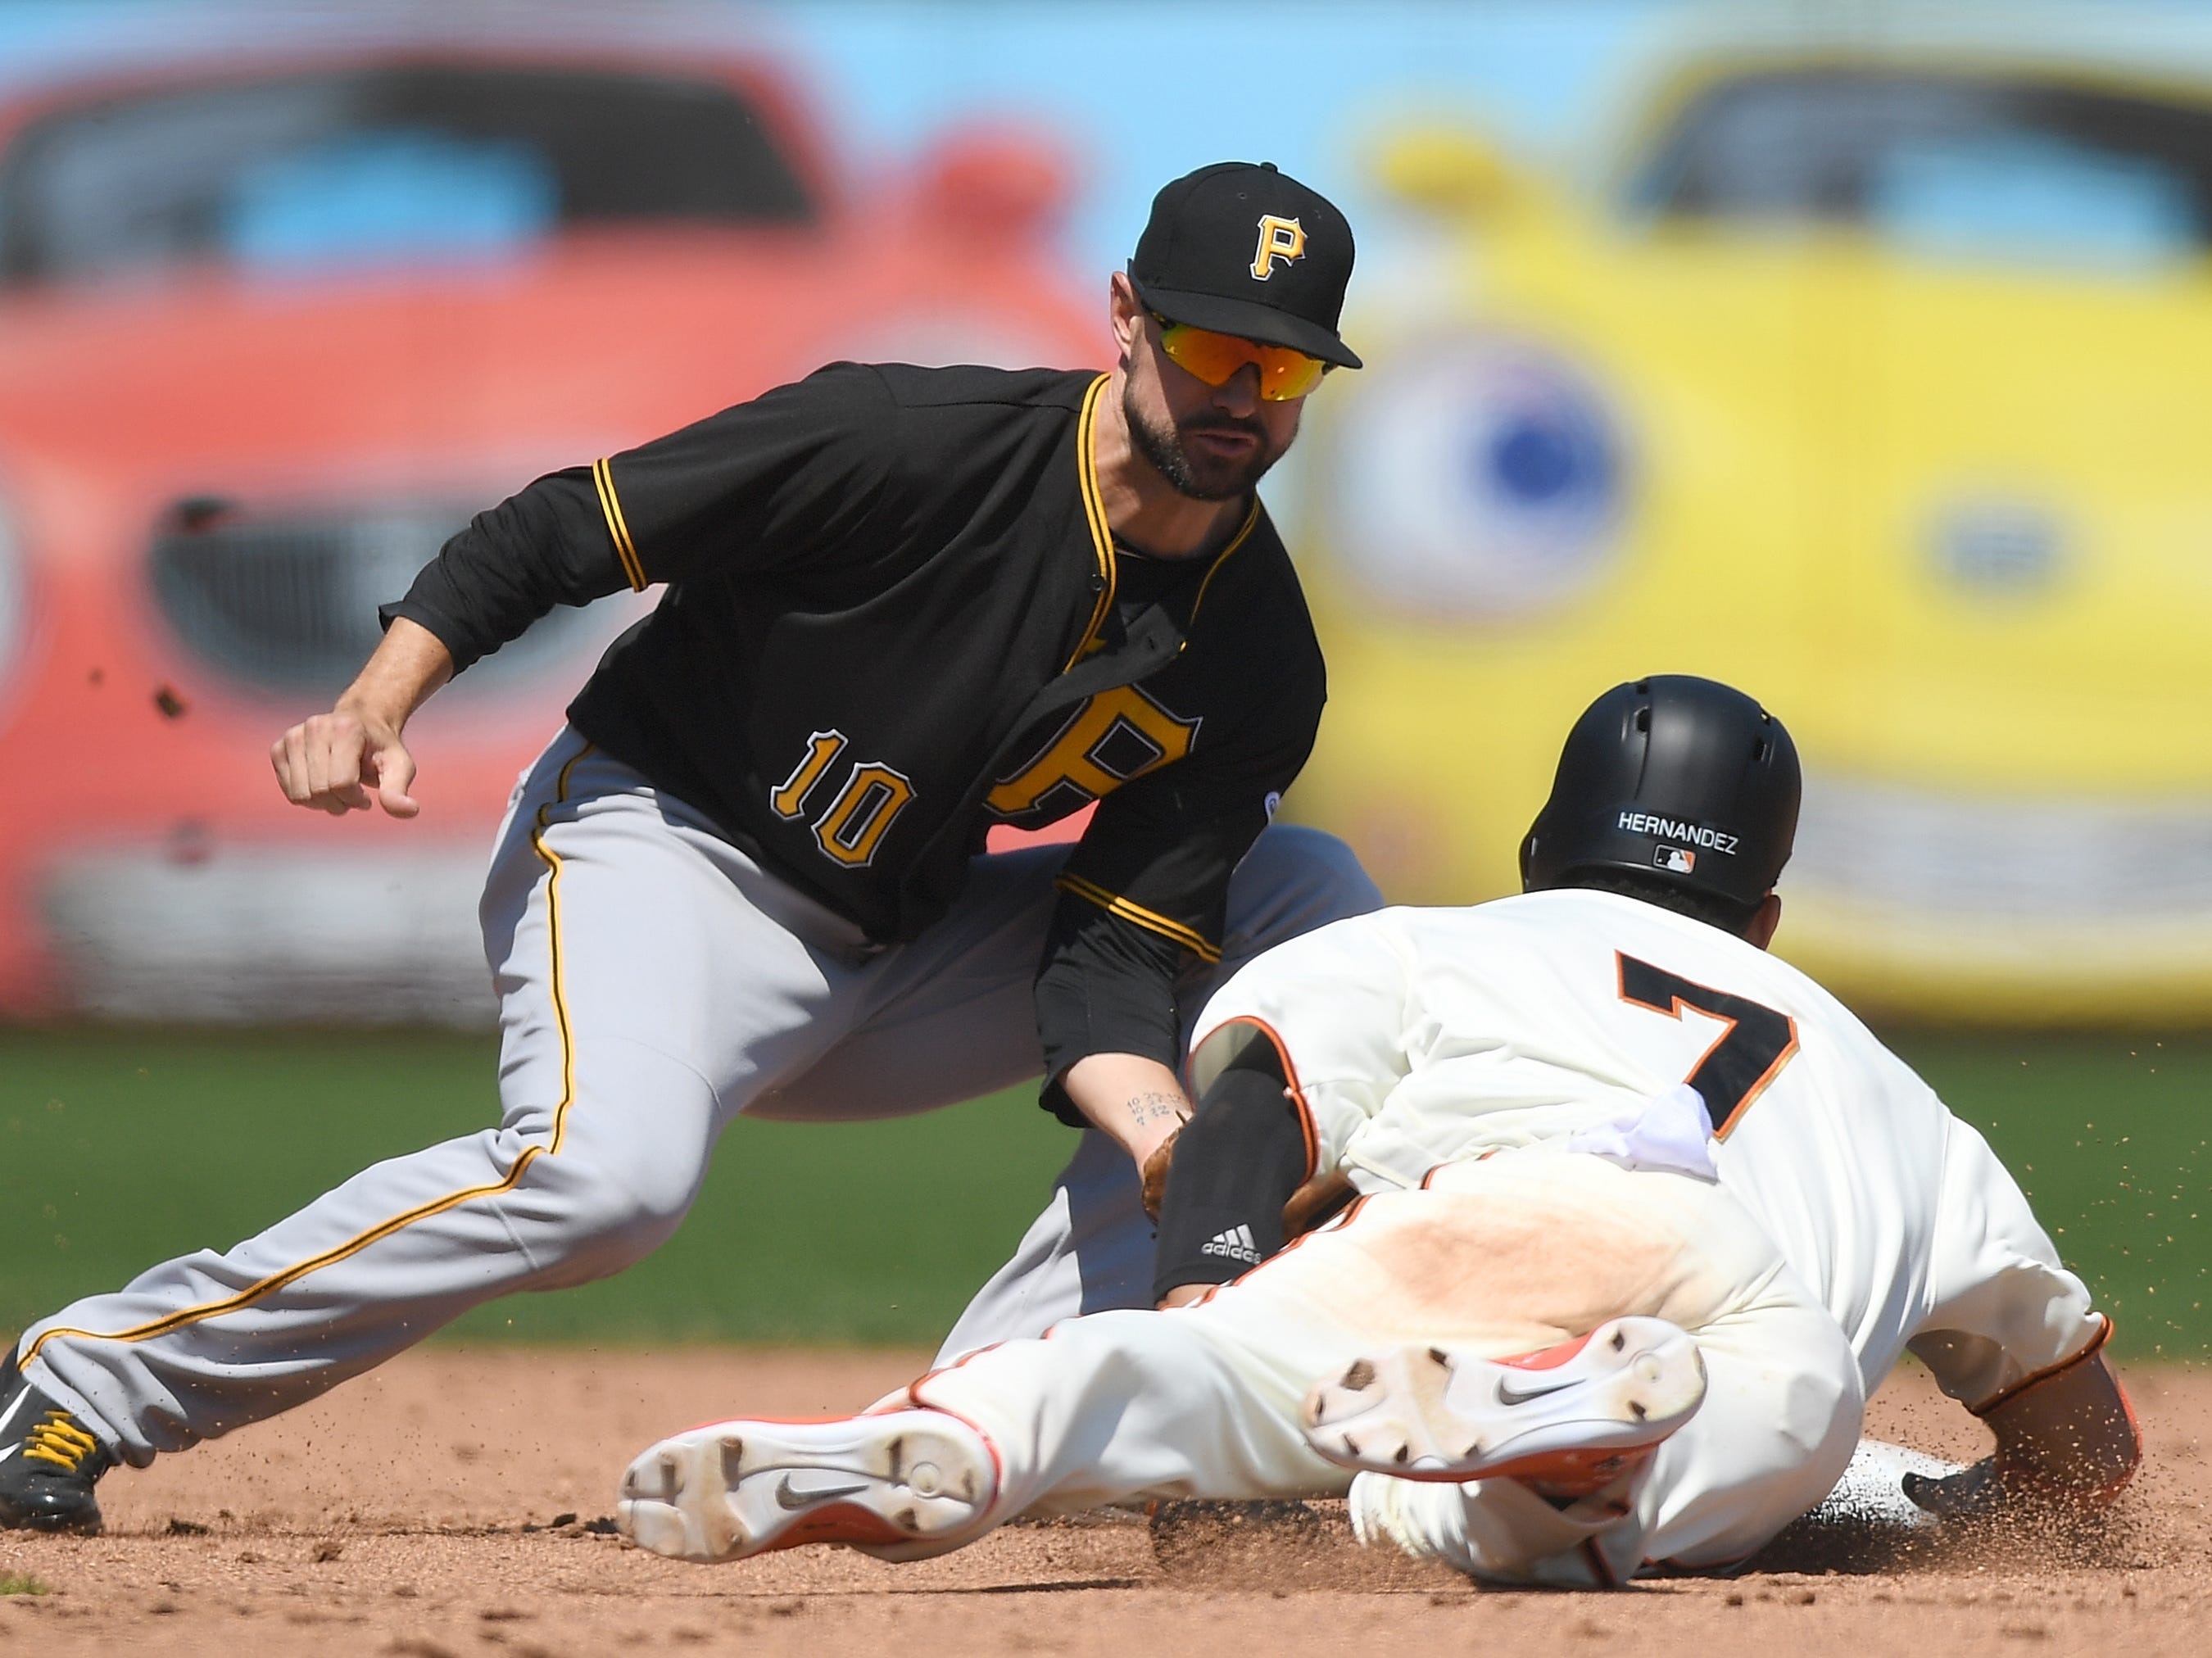 Gorkys Hernandez of the San Francisco Giants steals second base ahead of the throw to Jordy Mercer of the Pittsburgh Pirates in the bottom of the sixth inning at AT&T Park on August 12, 2018 in San Francisco, California.